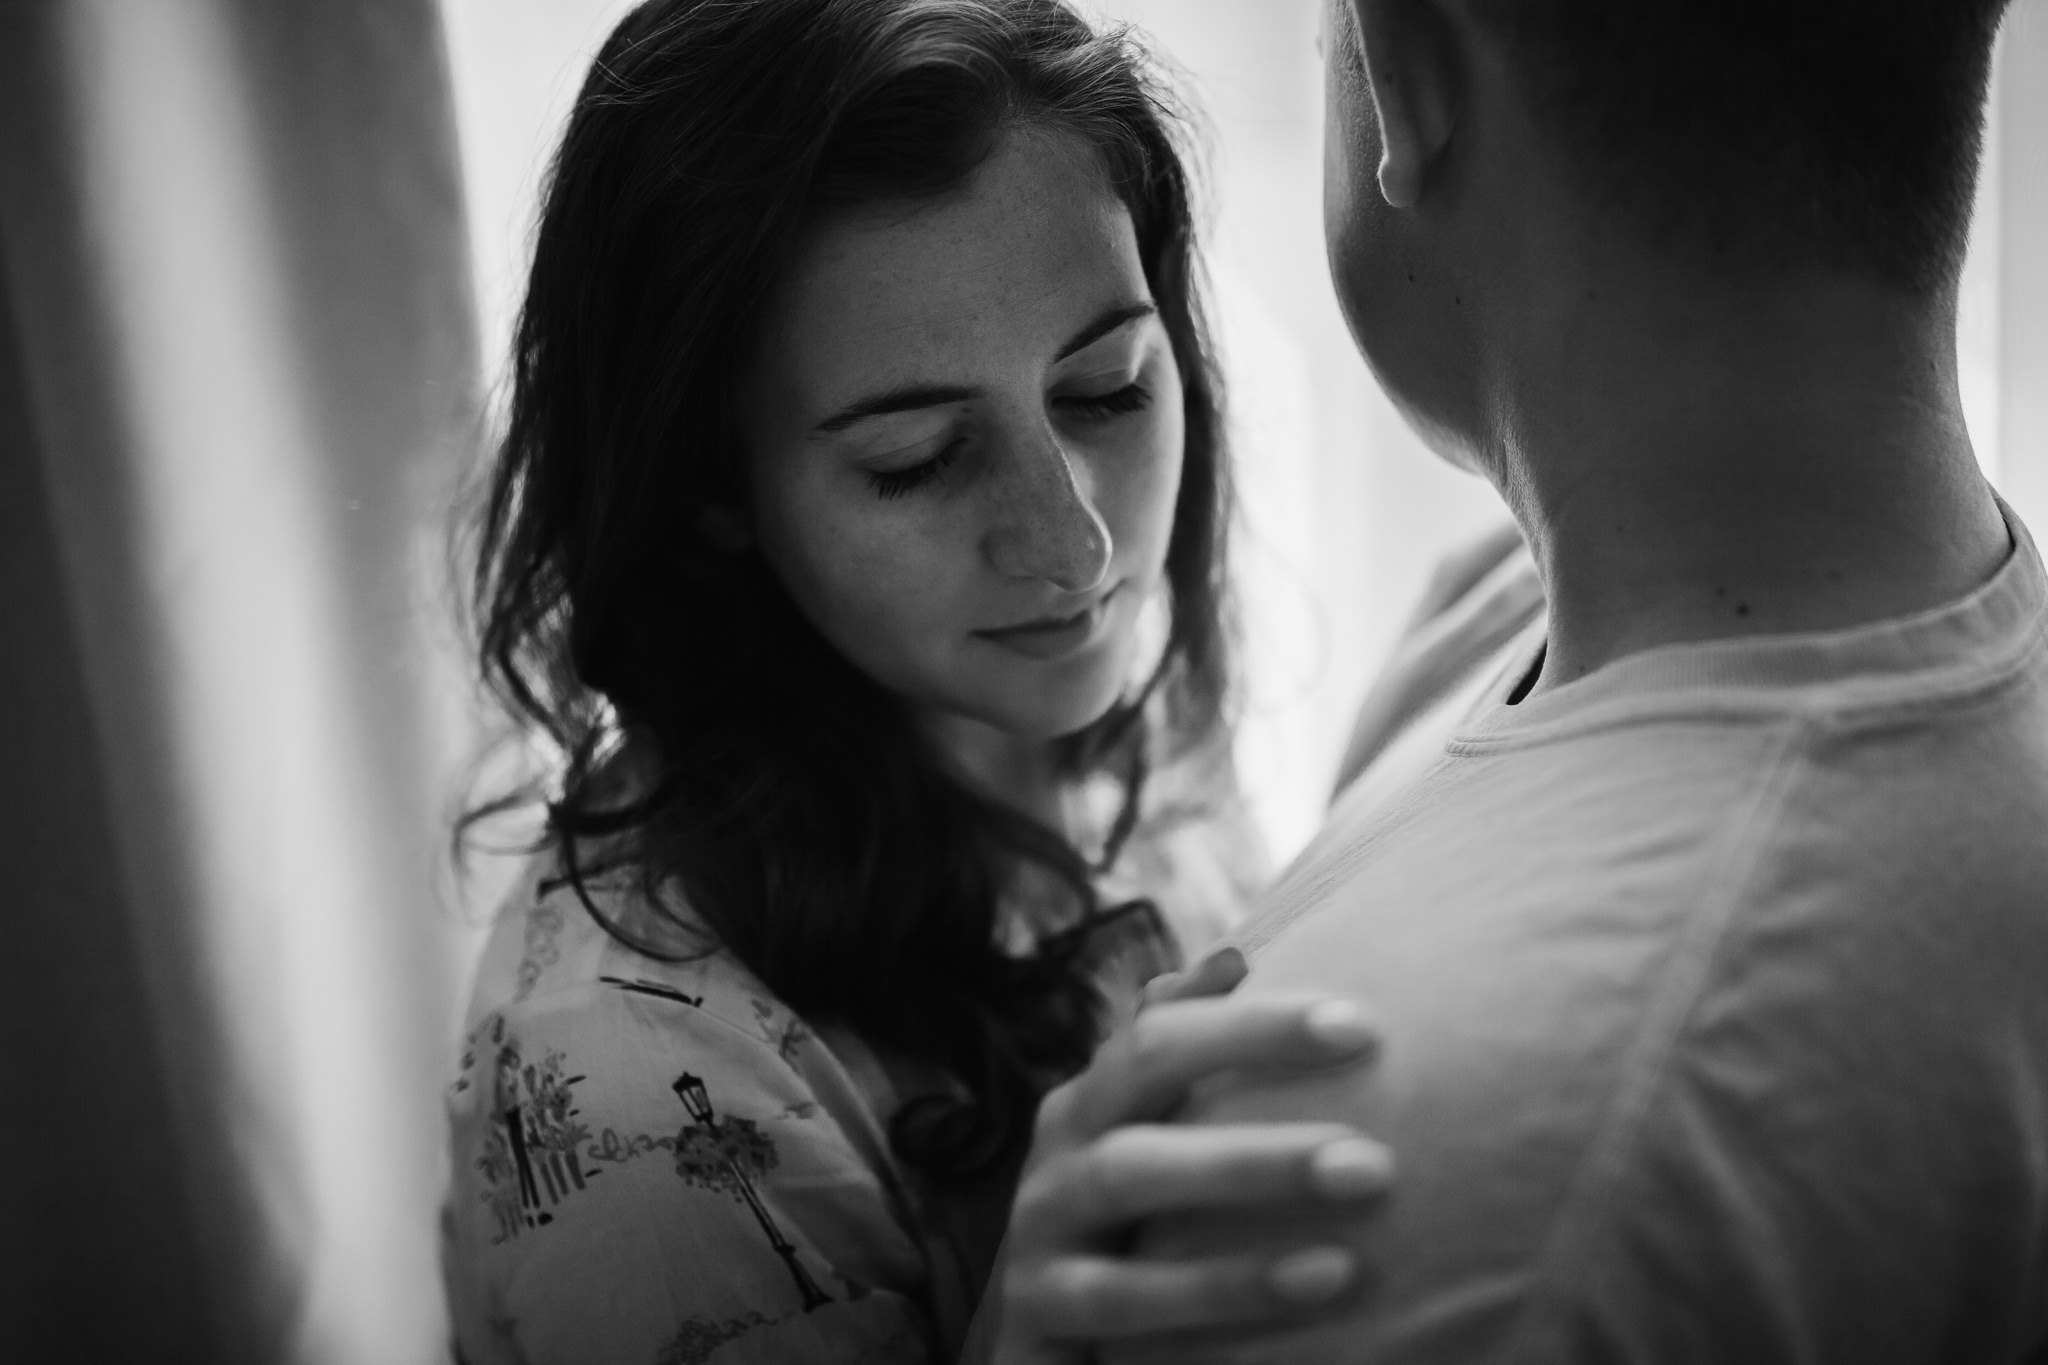 in-home-session-newlyweds-cassie-cook-photography-rosemary-beach-37.jpg